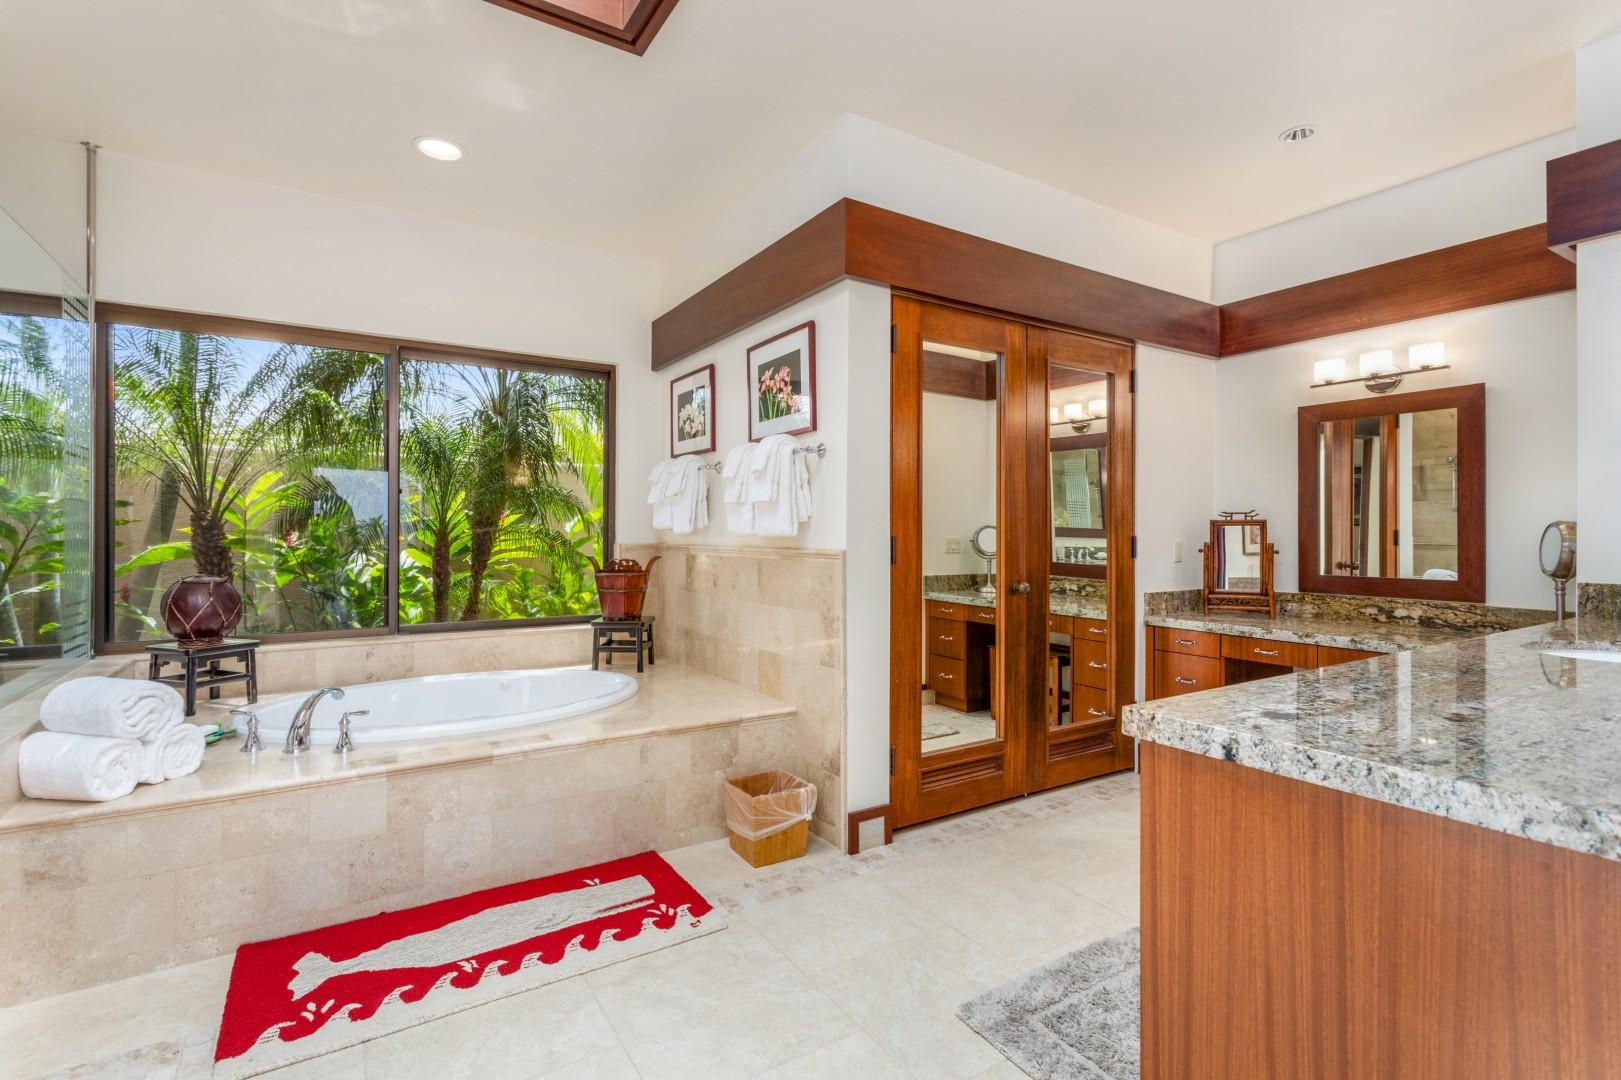 Master bathroom with soaking tub, dual vanity, walk-in shower, and separate commode for privacy.